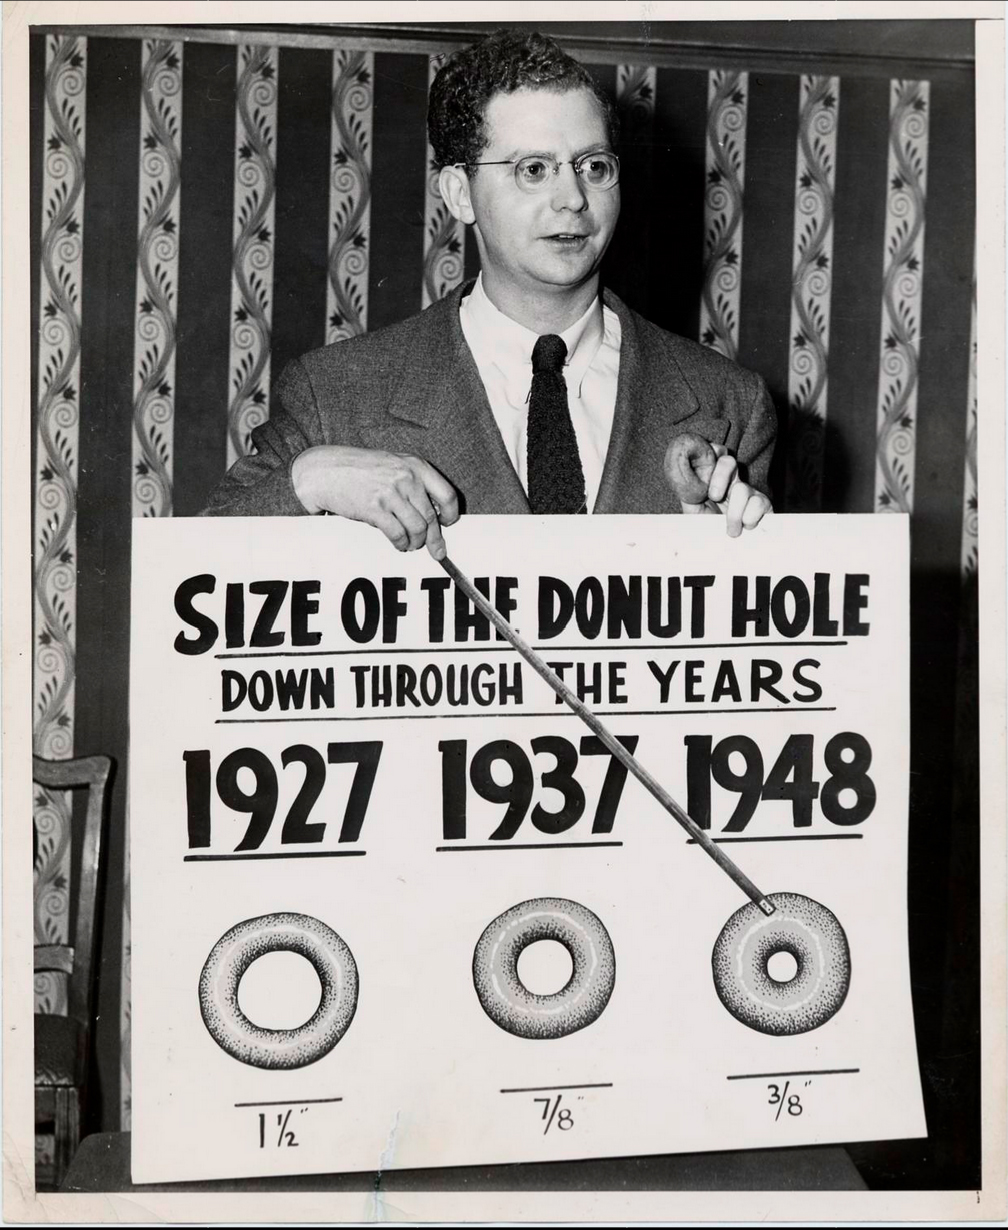 The donut is a lie.